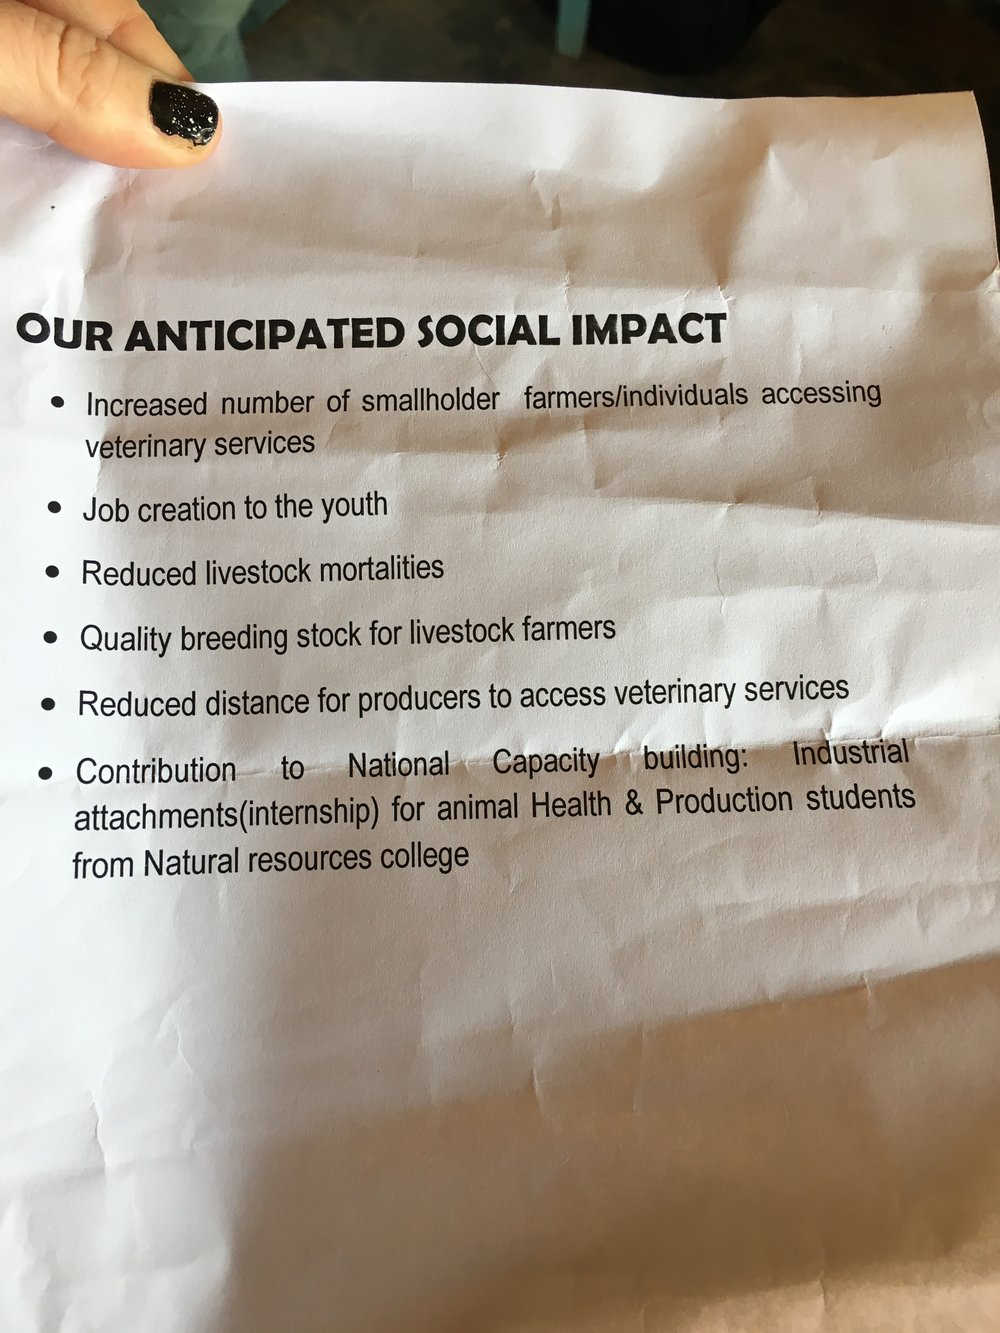 Grace's list of social impact goals are turned into measurable data points that can be tracked efficiently as part of her daily operating procedures. This information will be used to attract funders, report to her community, and direct her operations to optimize the positive impact on her stakeholders and the environment.